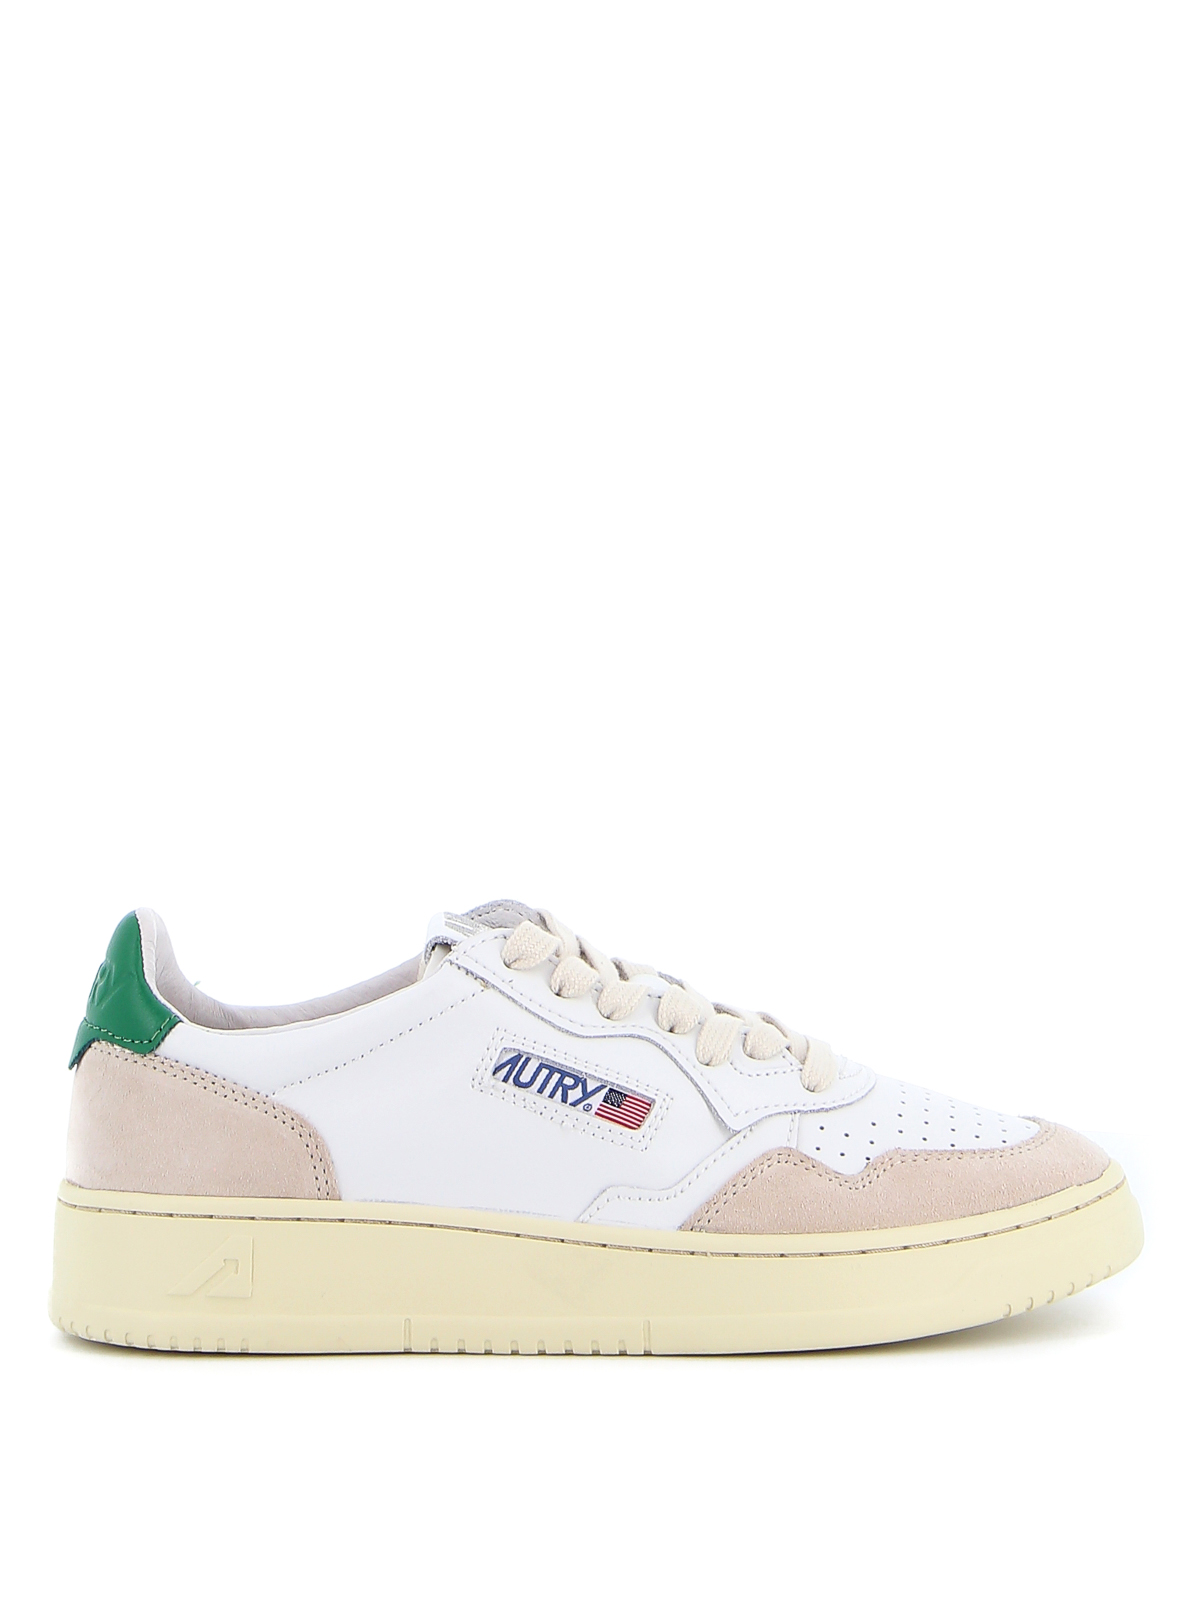 Autry Low-top Leather Sneakers In White